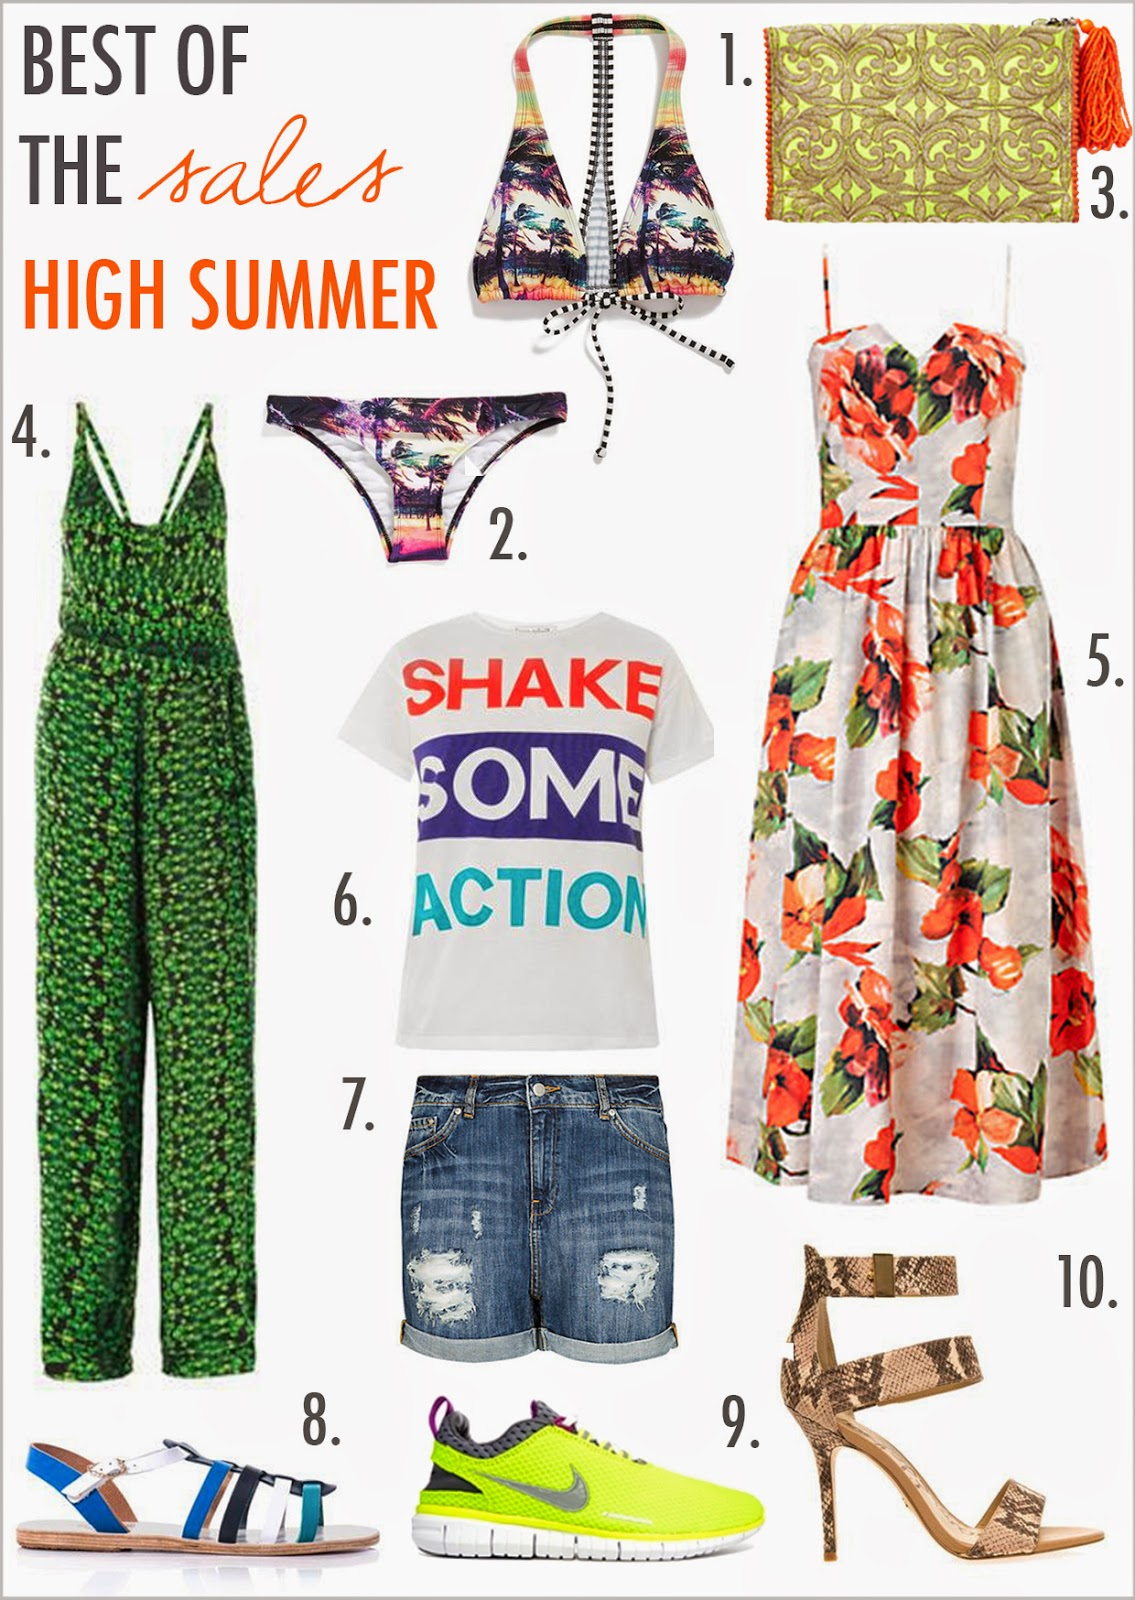 Best Of The Sales - High Summer